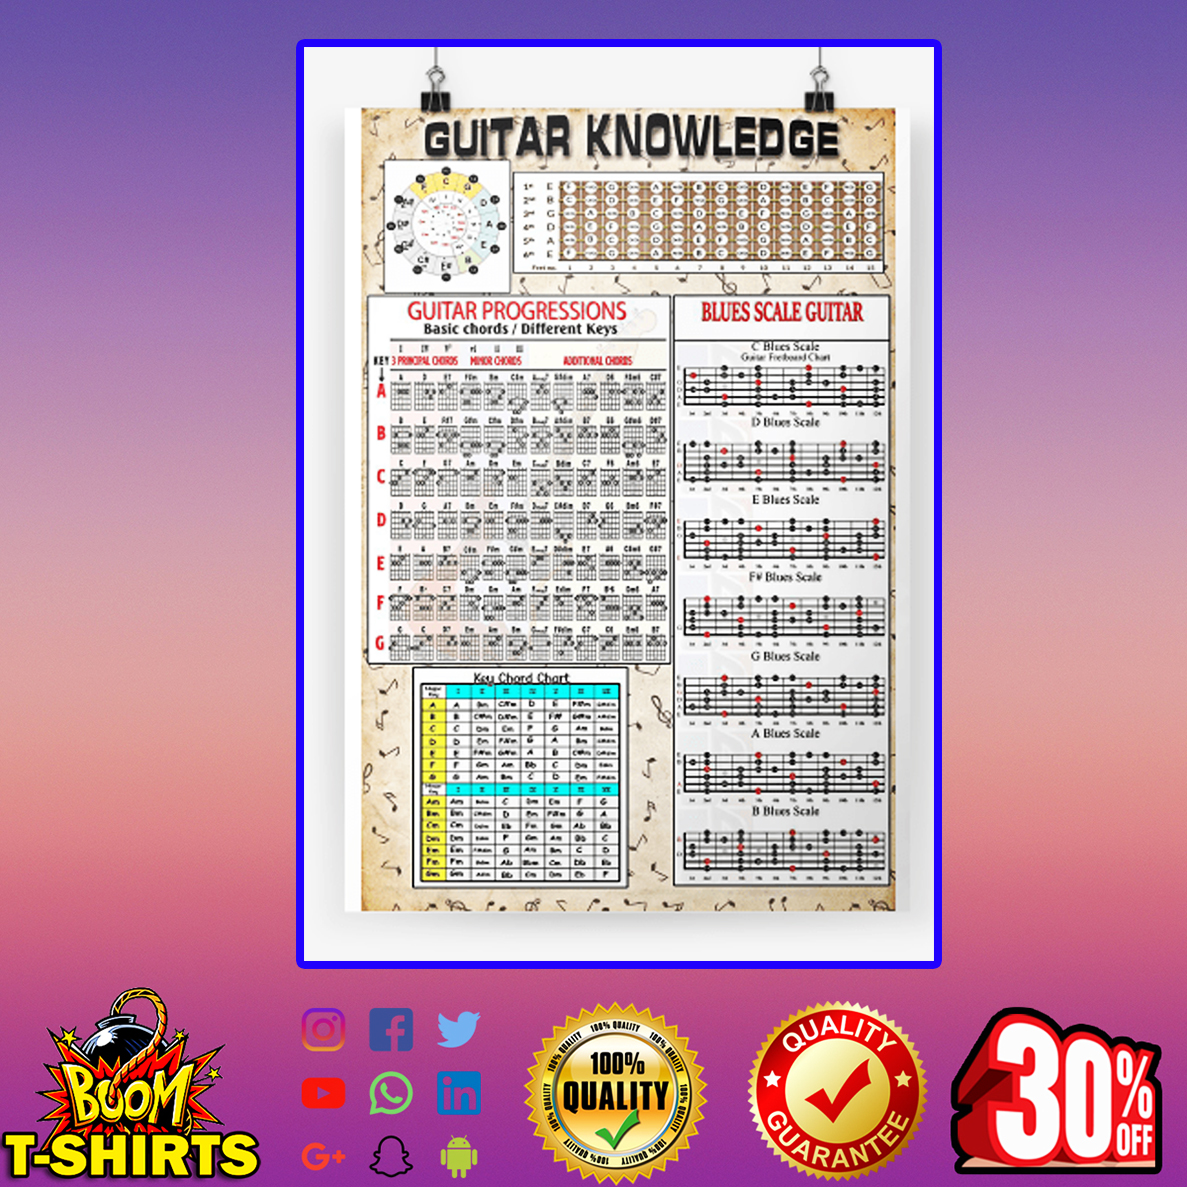 Guitar knowledge guitar progressions blues scale guitar poster - a2